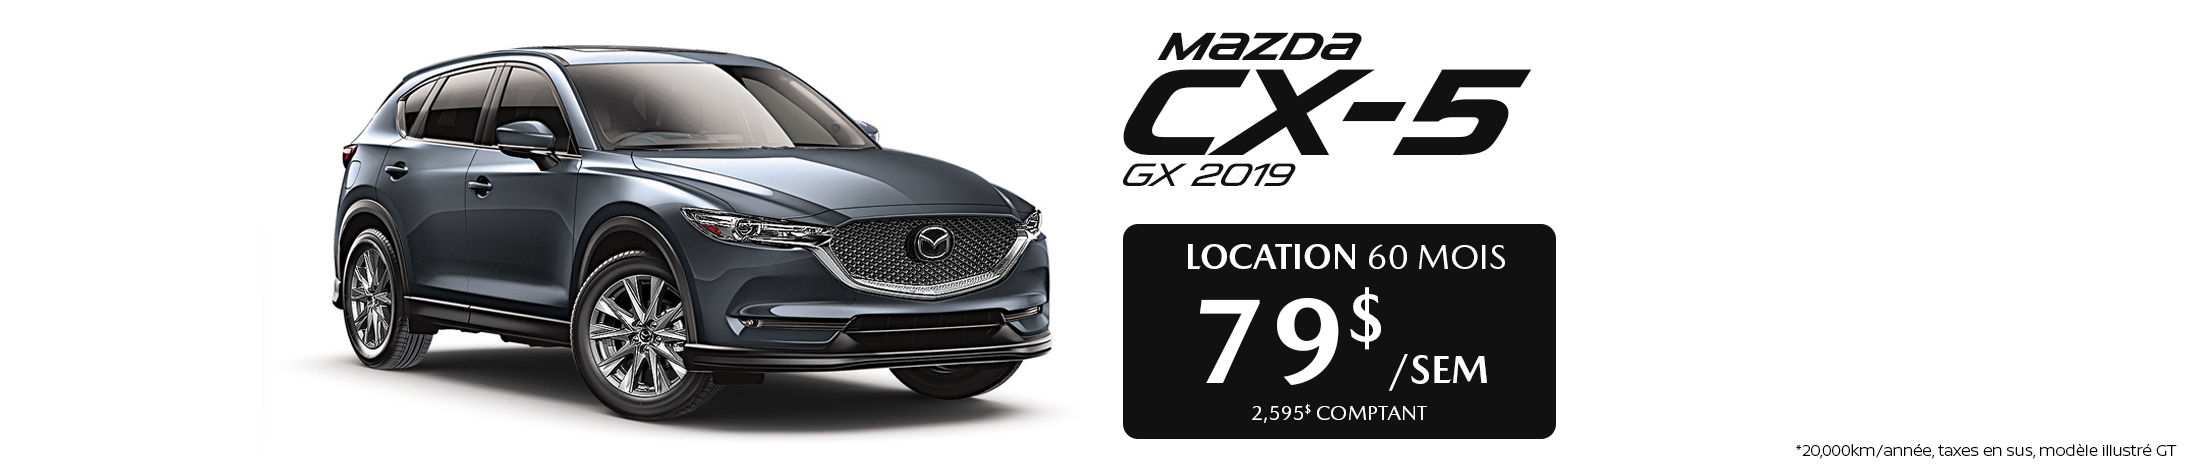 Mazda CX-5 2019 (Copie)